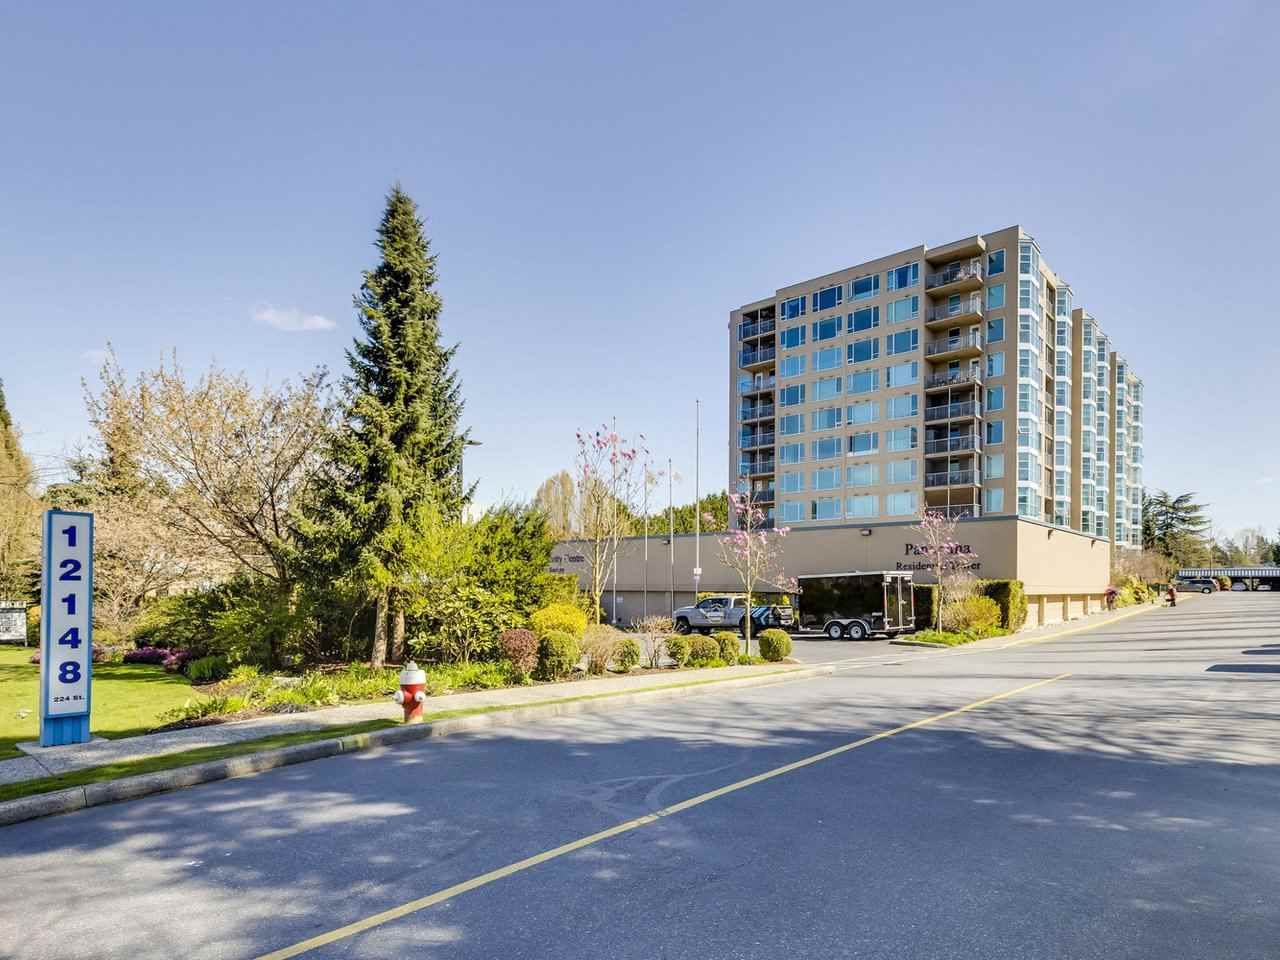 """Main Photo: 209 12148 224 Street in Maple Ridge: East Central Condo for sale in """"PANORAMA"""" : MLS®# R2565889"""